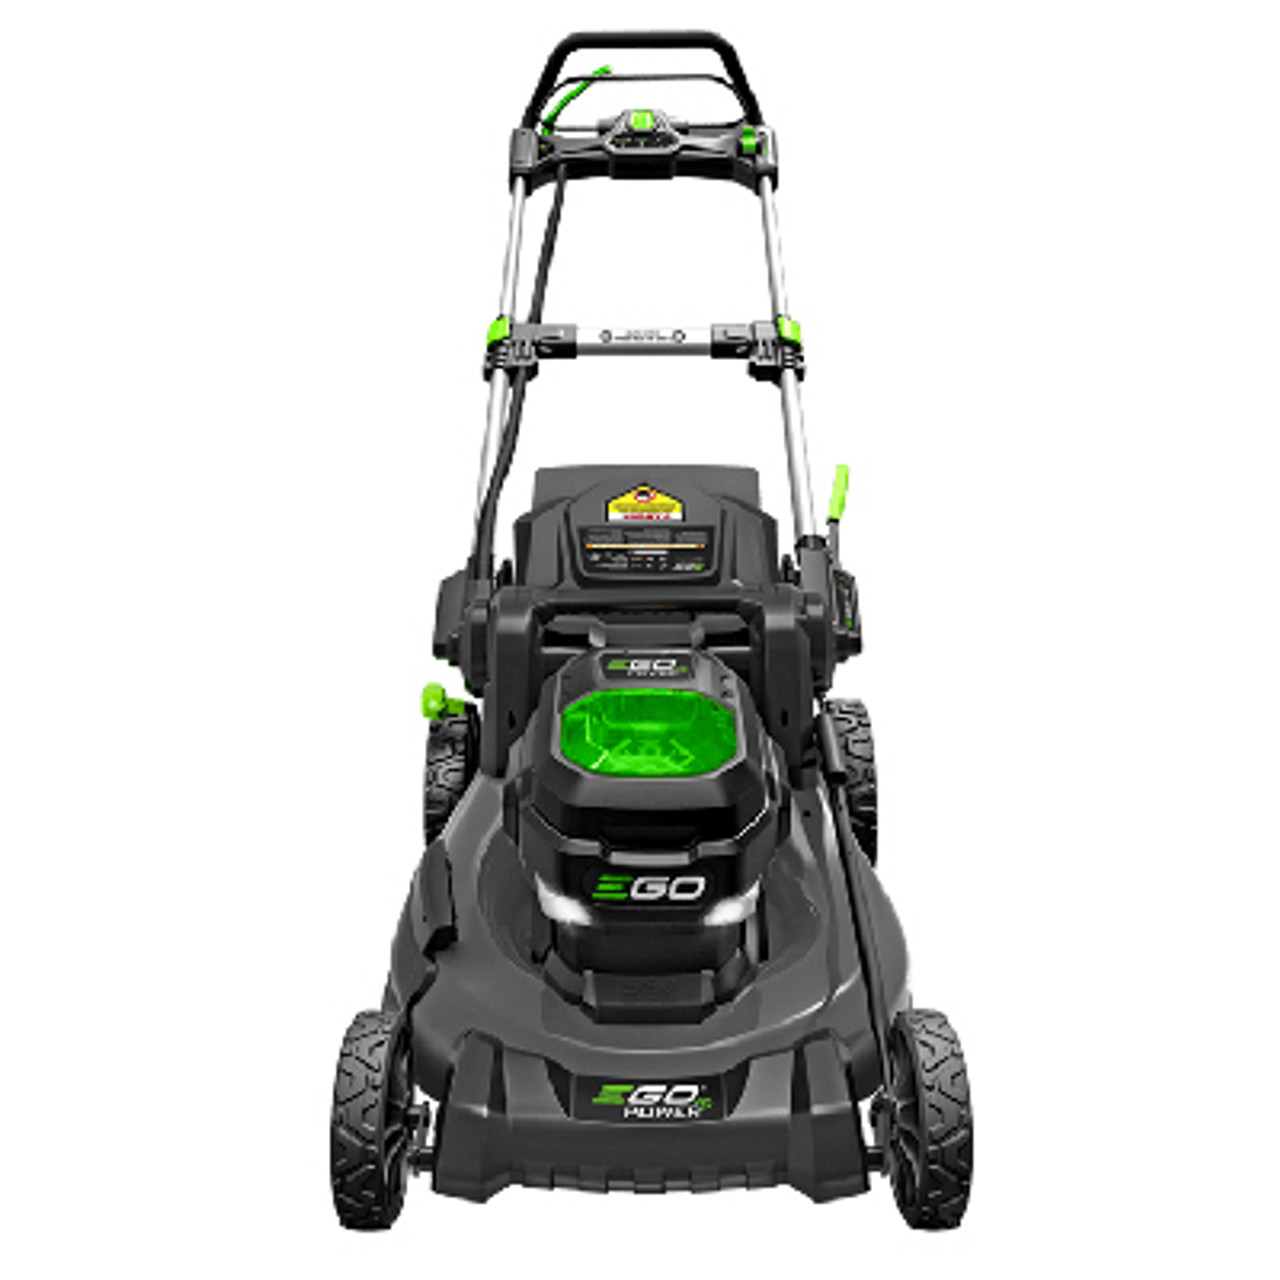 Ego Lm2020sp 20 56v Battery Powered Walk Behind Steel Deck Self Propelled Lawn Mower Battery Charger Not Included Sohars